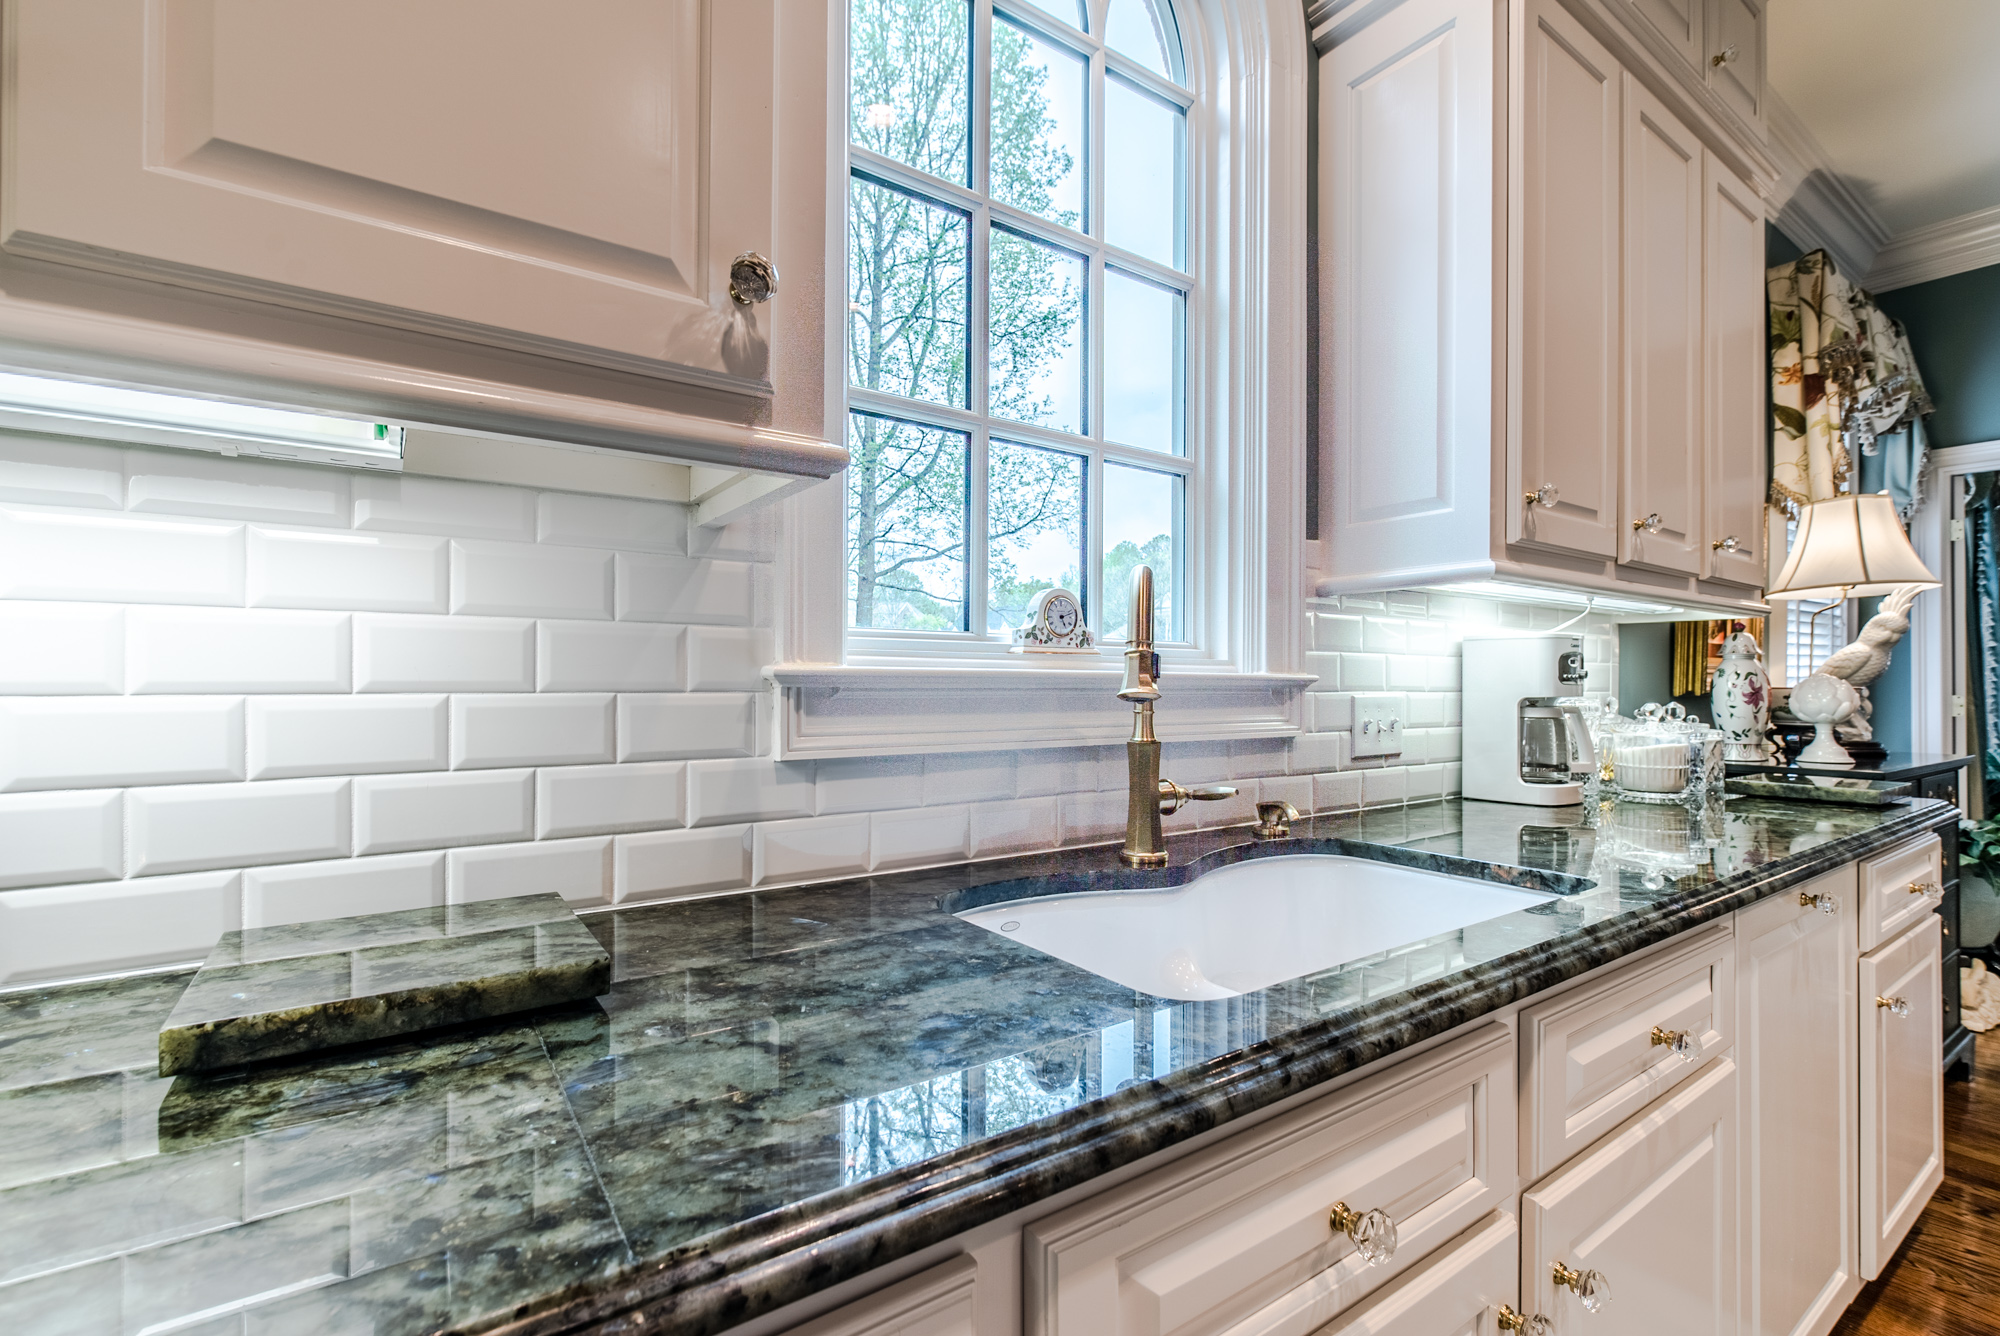 Subway tile backsplash with white subway tiles at East Coast Granite & Marble